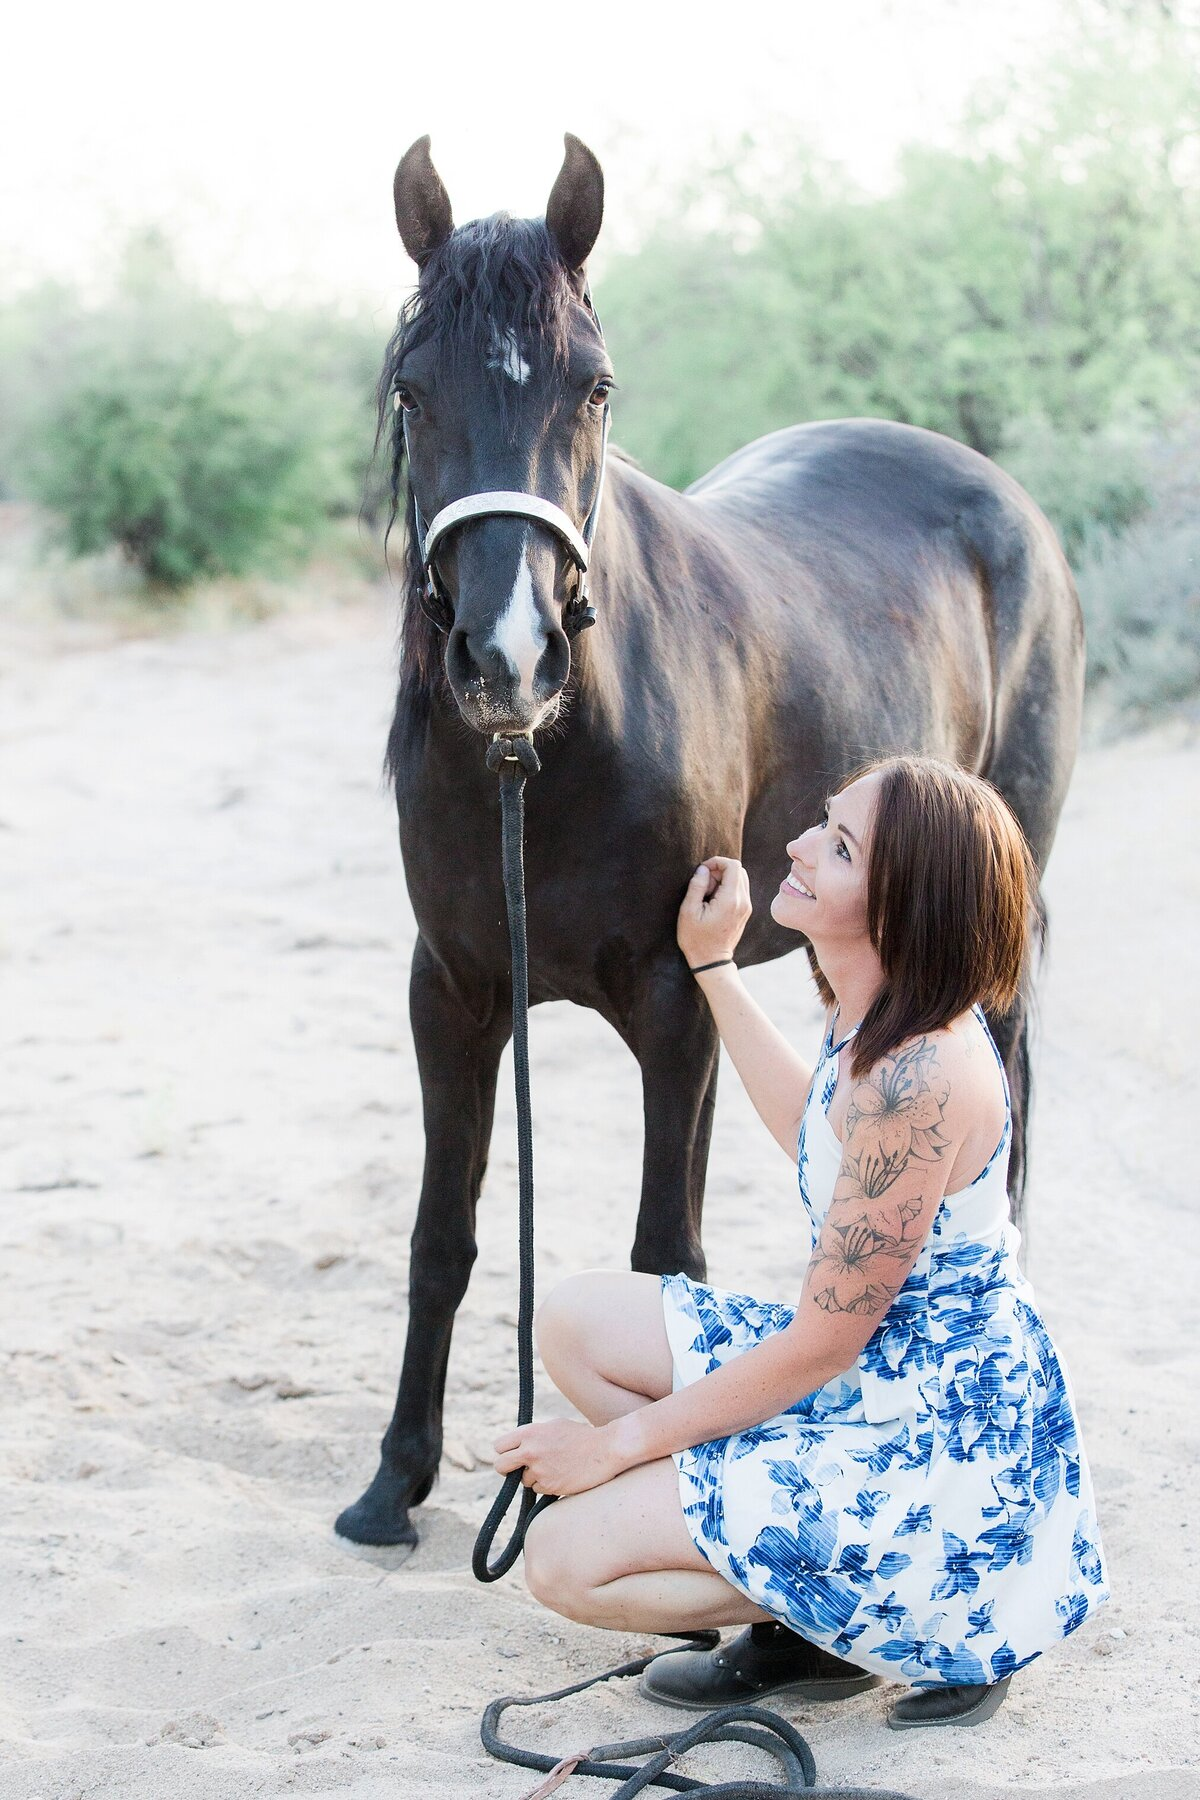 girl kneeling in front of her horse, looking up at her while her horse looks at the camera